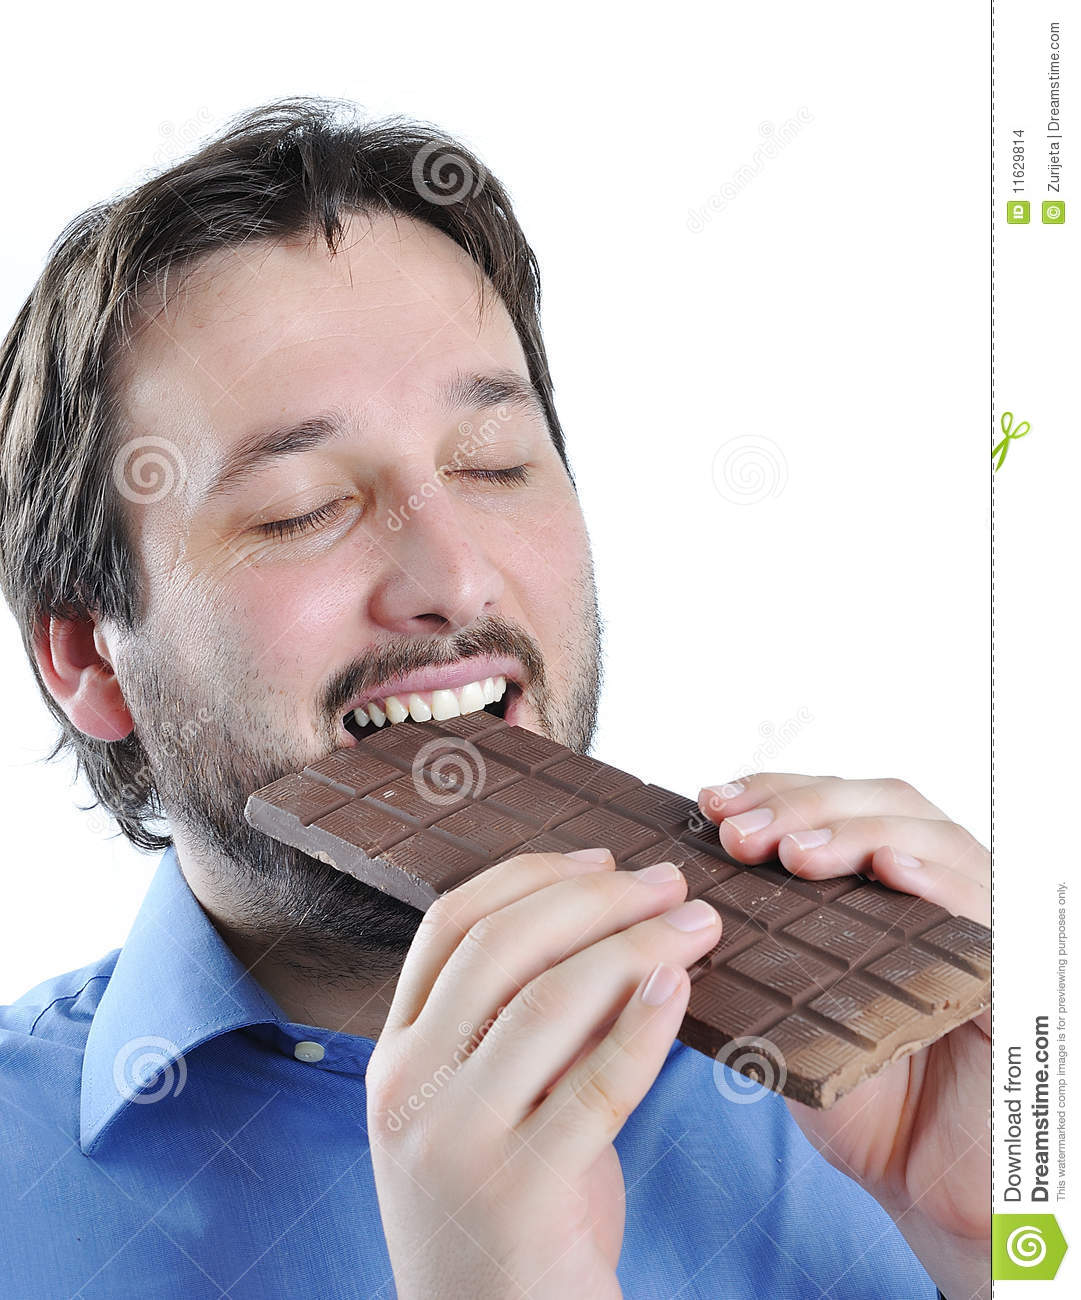 happy-young-man-eating-chocolate-11629814.jpg